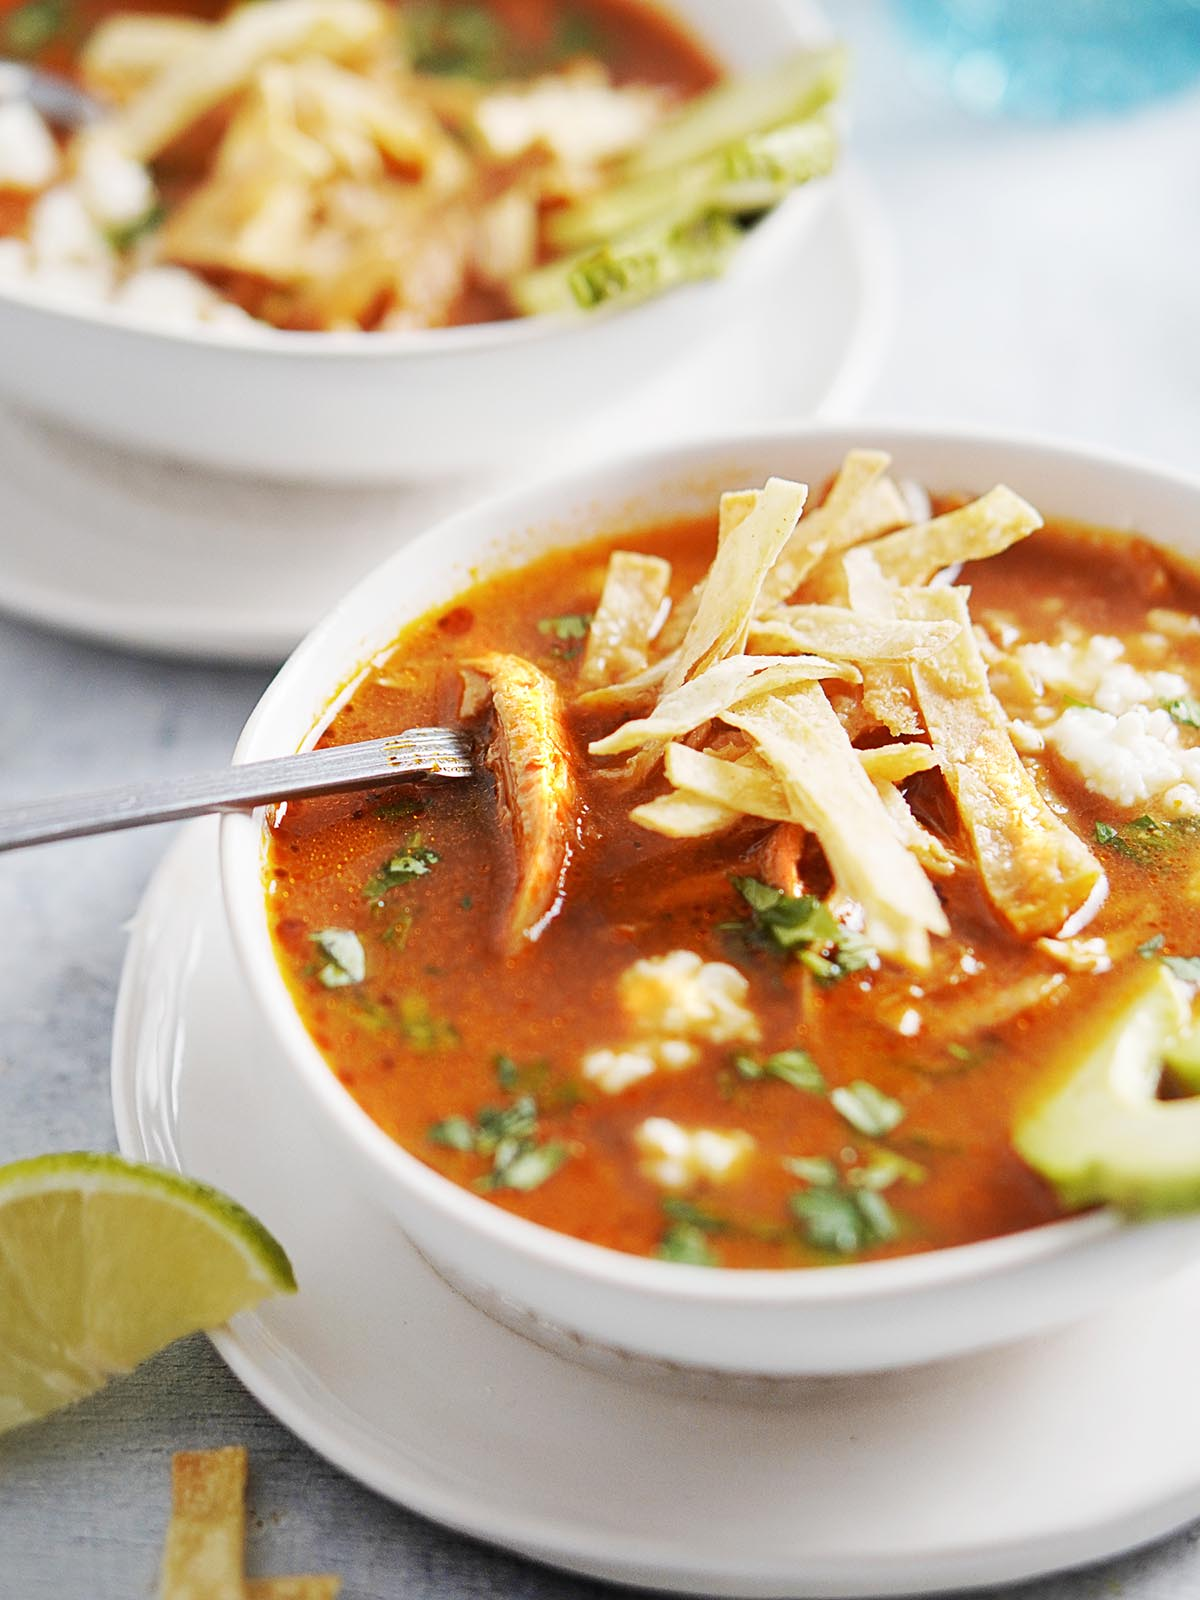 Two white bowls with sopa de tortilla and a spoon. Limes on the side.